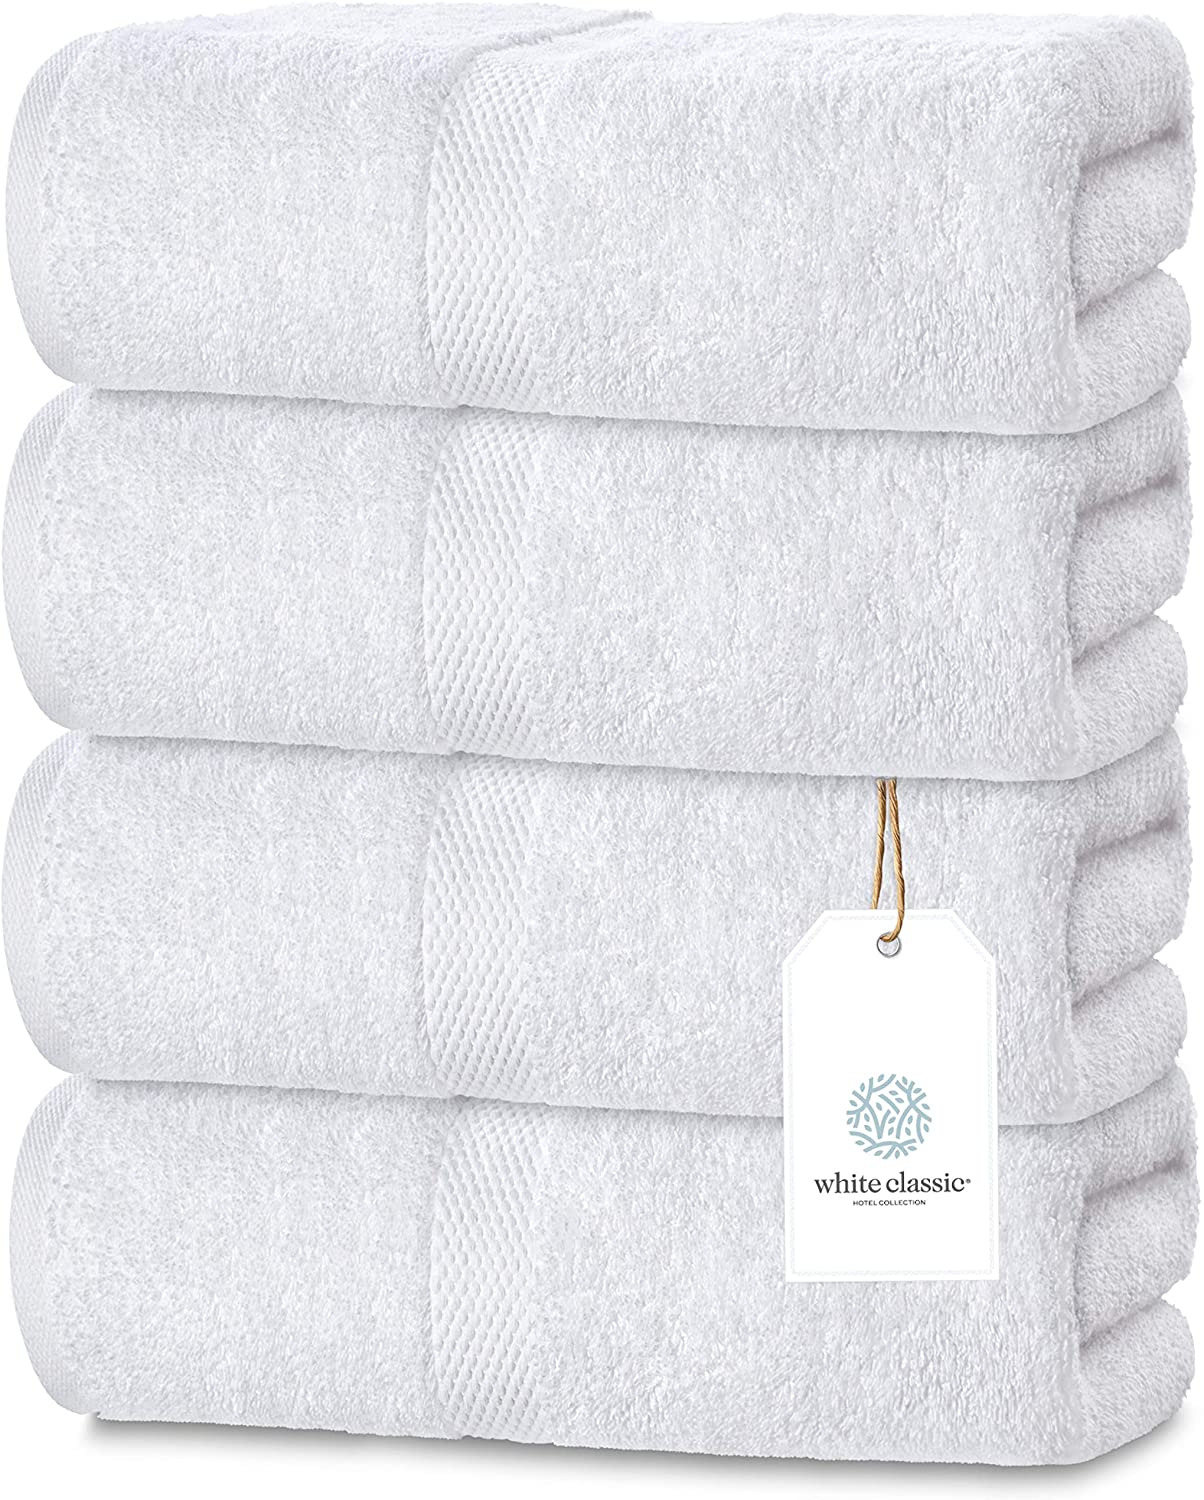 6 white 24x50 home deluxe brand soft bath towels 12# absorbent plush hotel